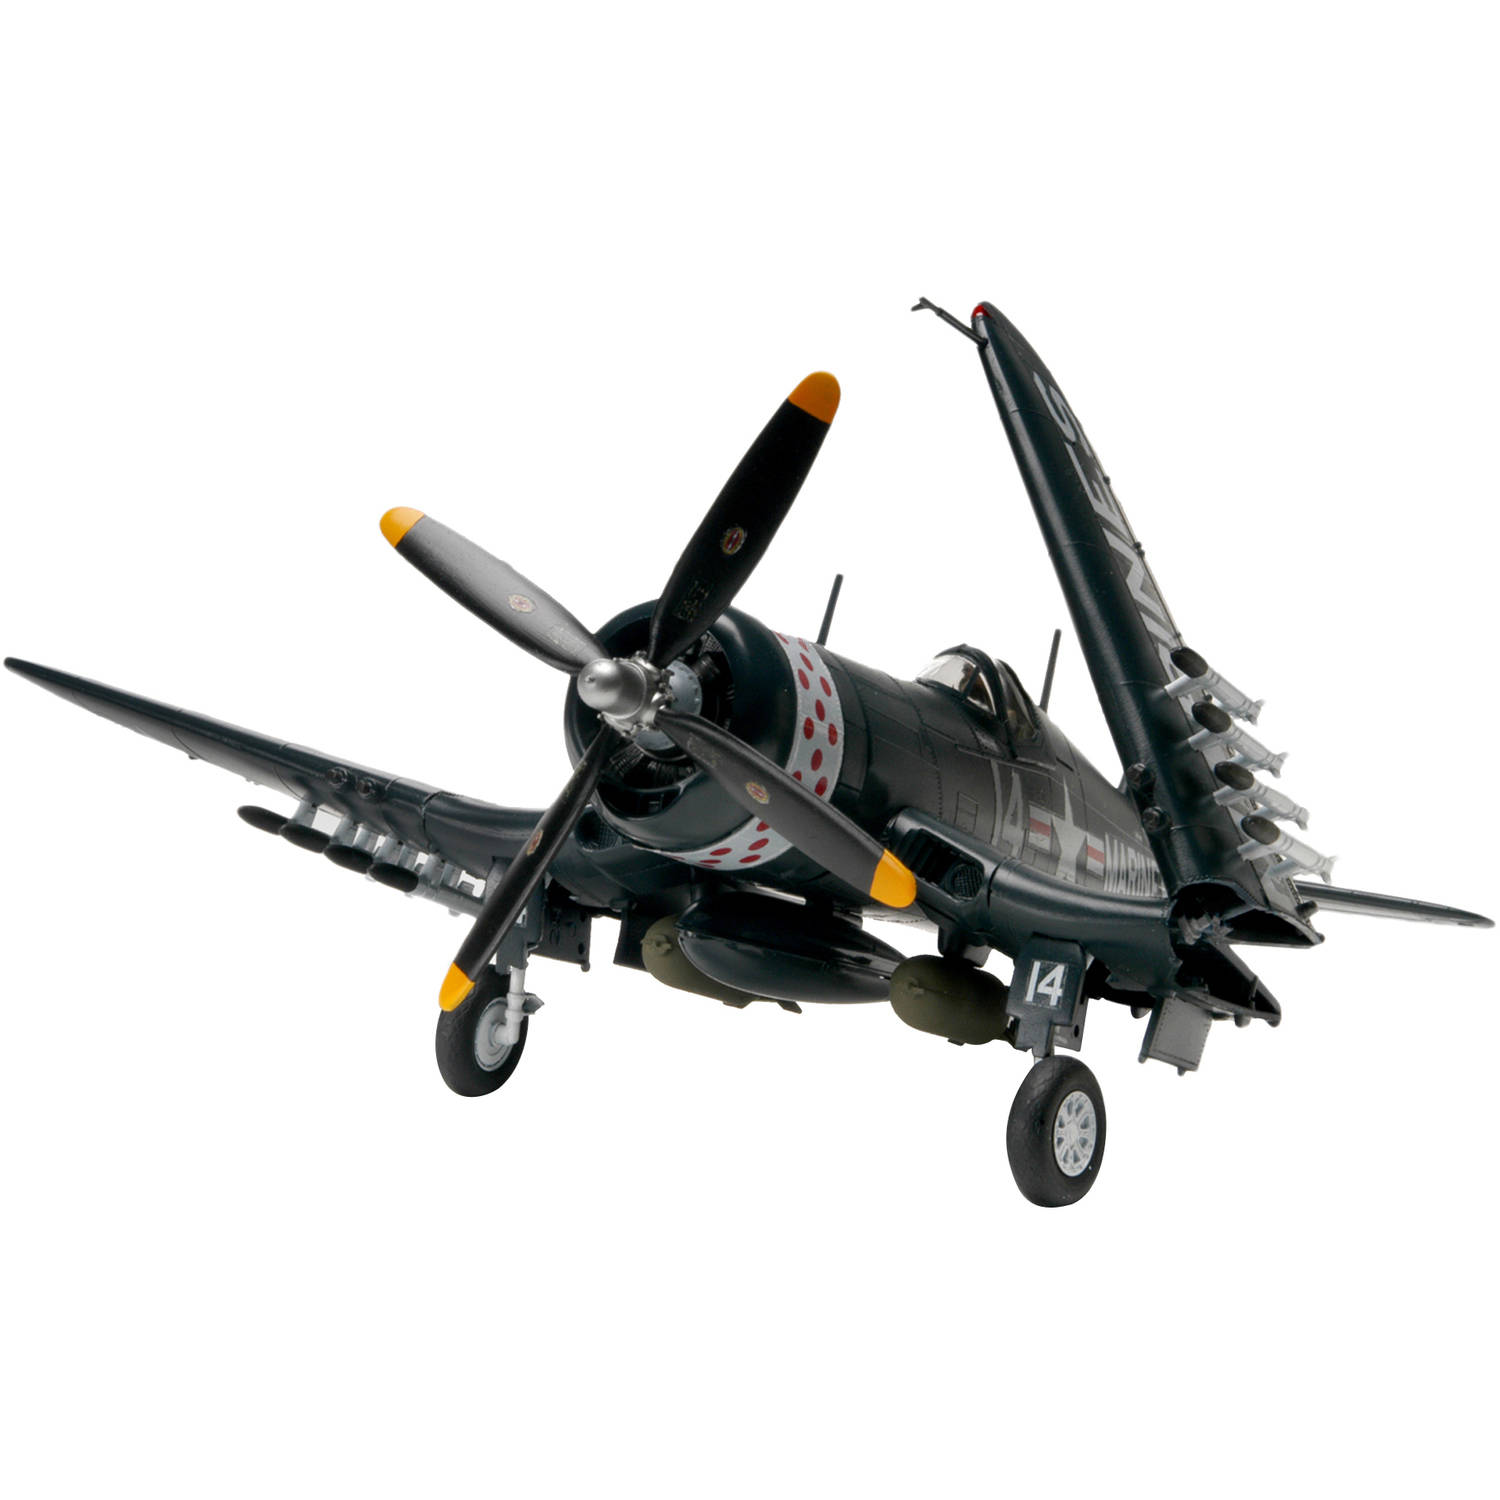 Revell 1:48 Corsair F4U-4 Model Kit by Revell